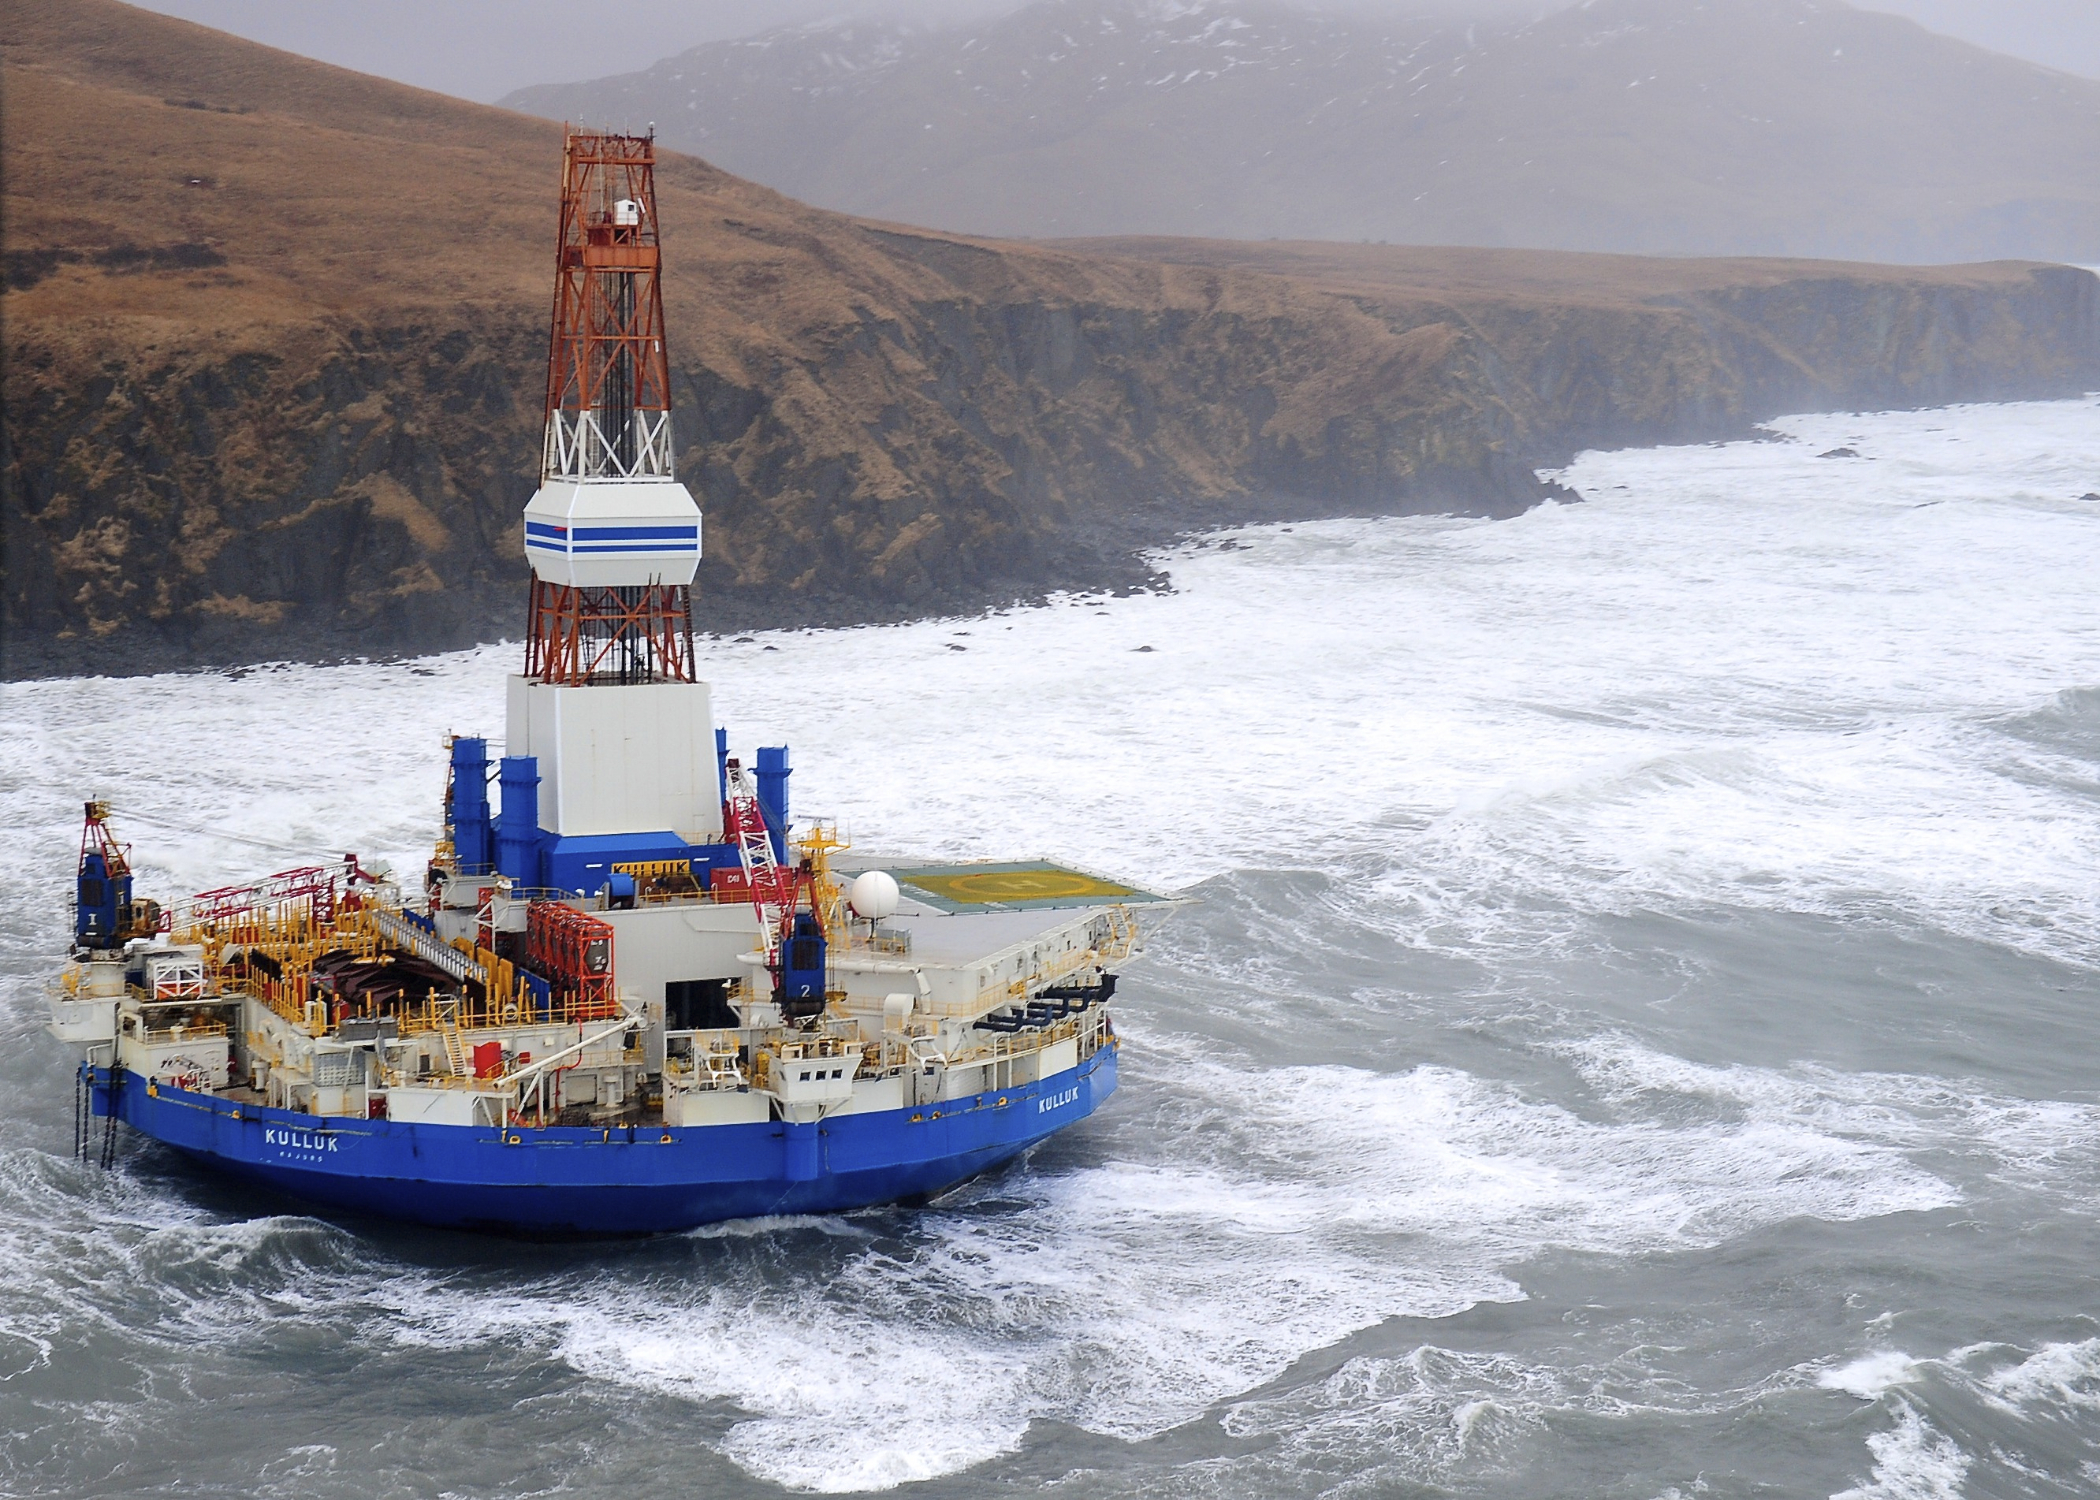 The Kulluk is an Arctic drill rig owned by Royal Dutch Shell. In 2012, the rig ran aground off Sitkalidak Island near Kodiak Island. The highly publicized incident was used by drilling opponents as an example of Shell's lack of qualifications to drill in the Arctic. (Photo by Petty Officer 1st Class Sara Francis/U.S. Coast Guard)